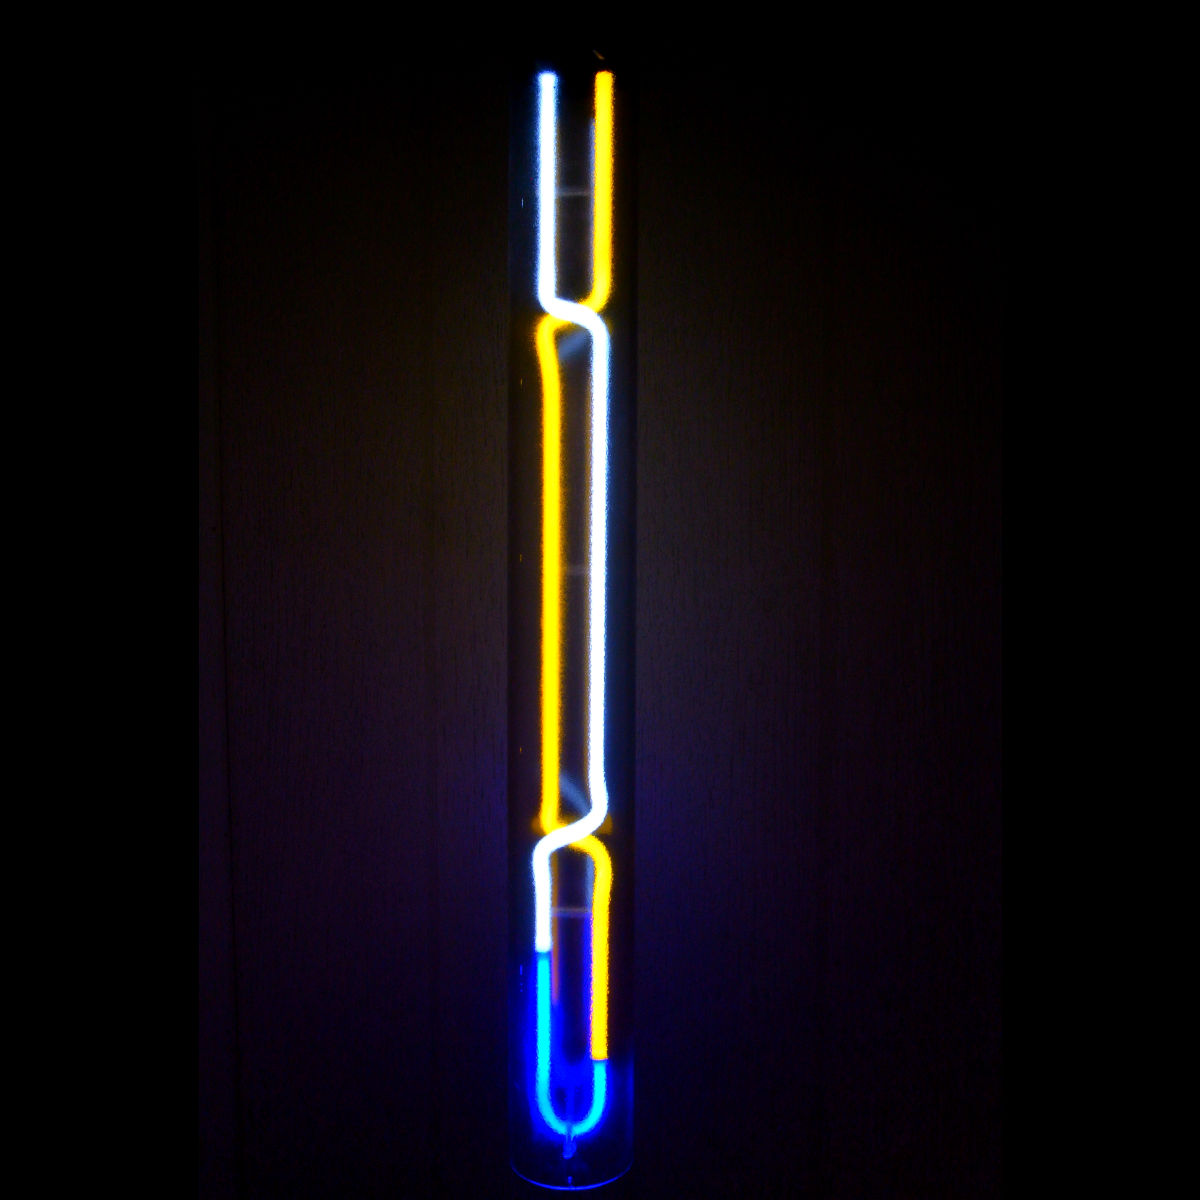 Designer Neon Light Cylinders by John Barton - BartonNeonMagic.com